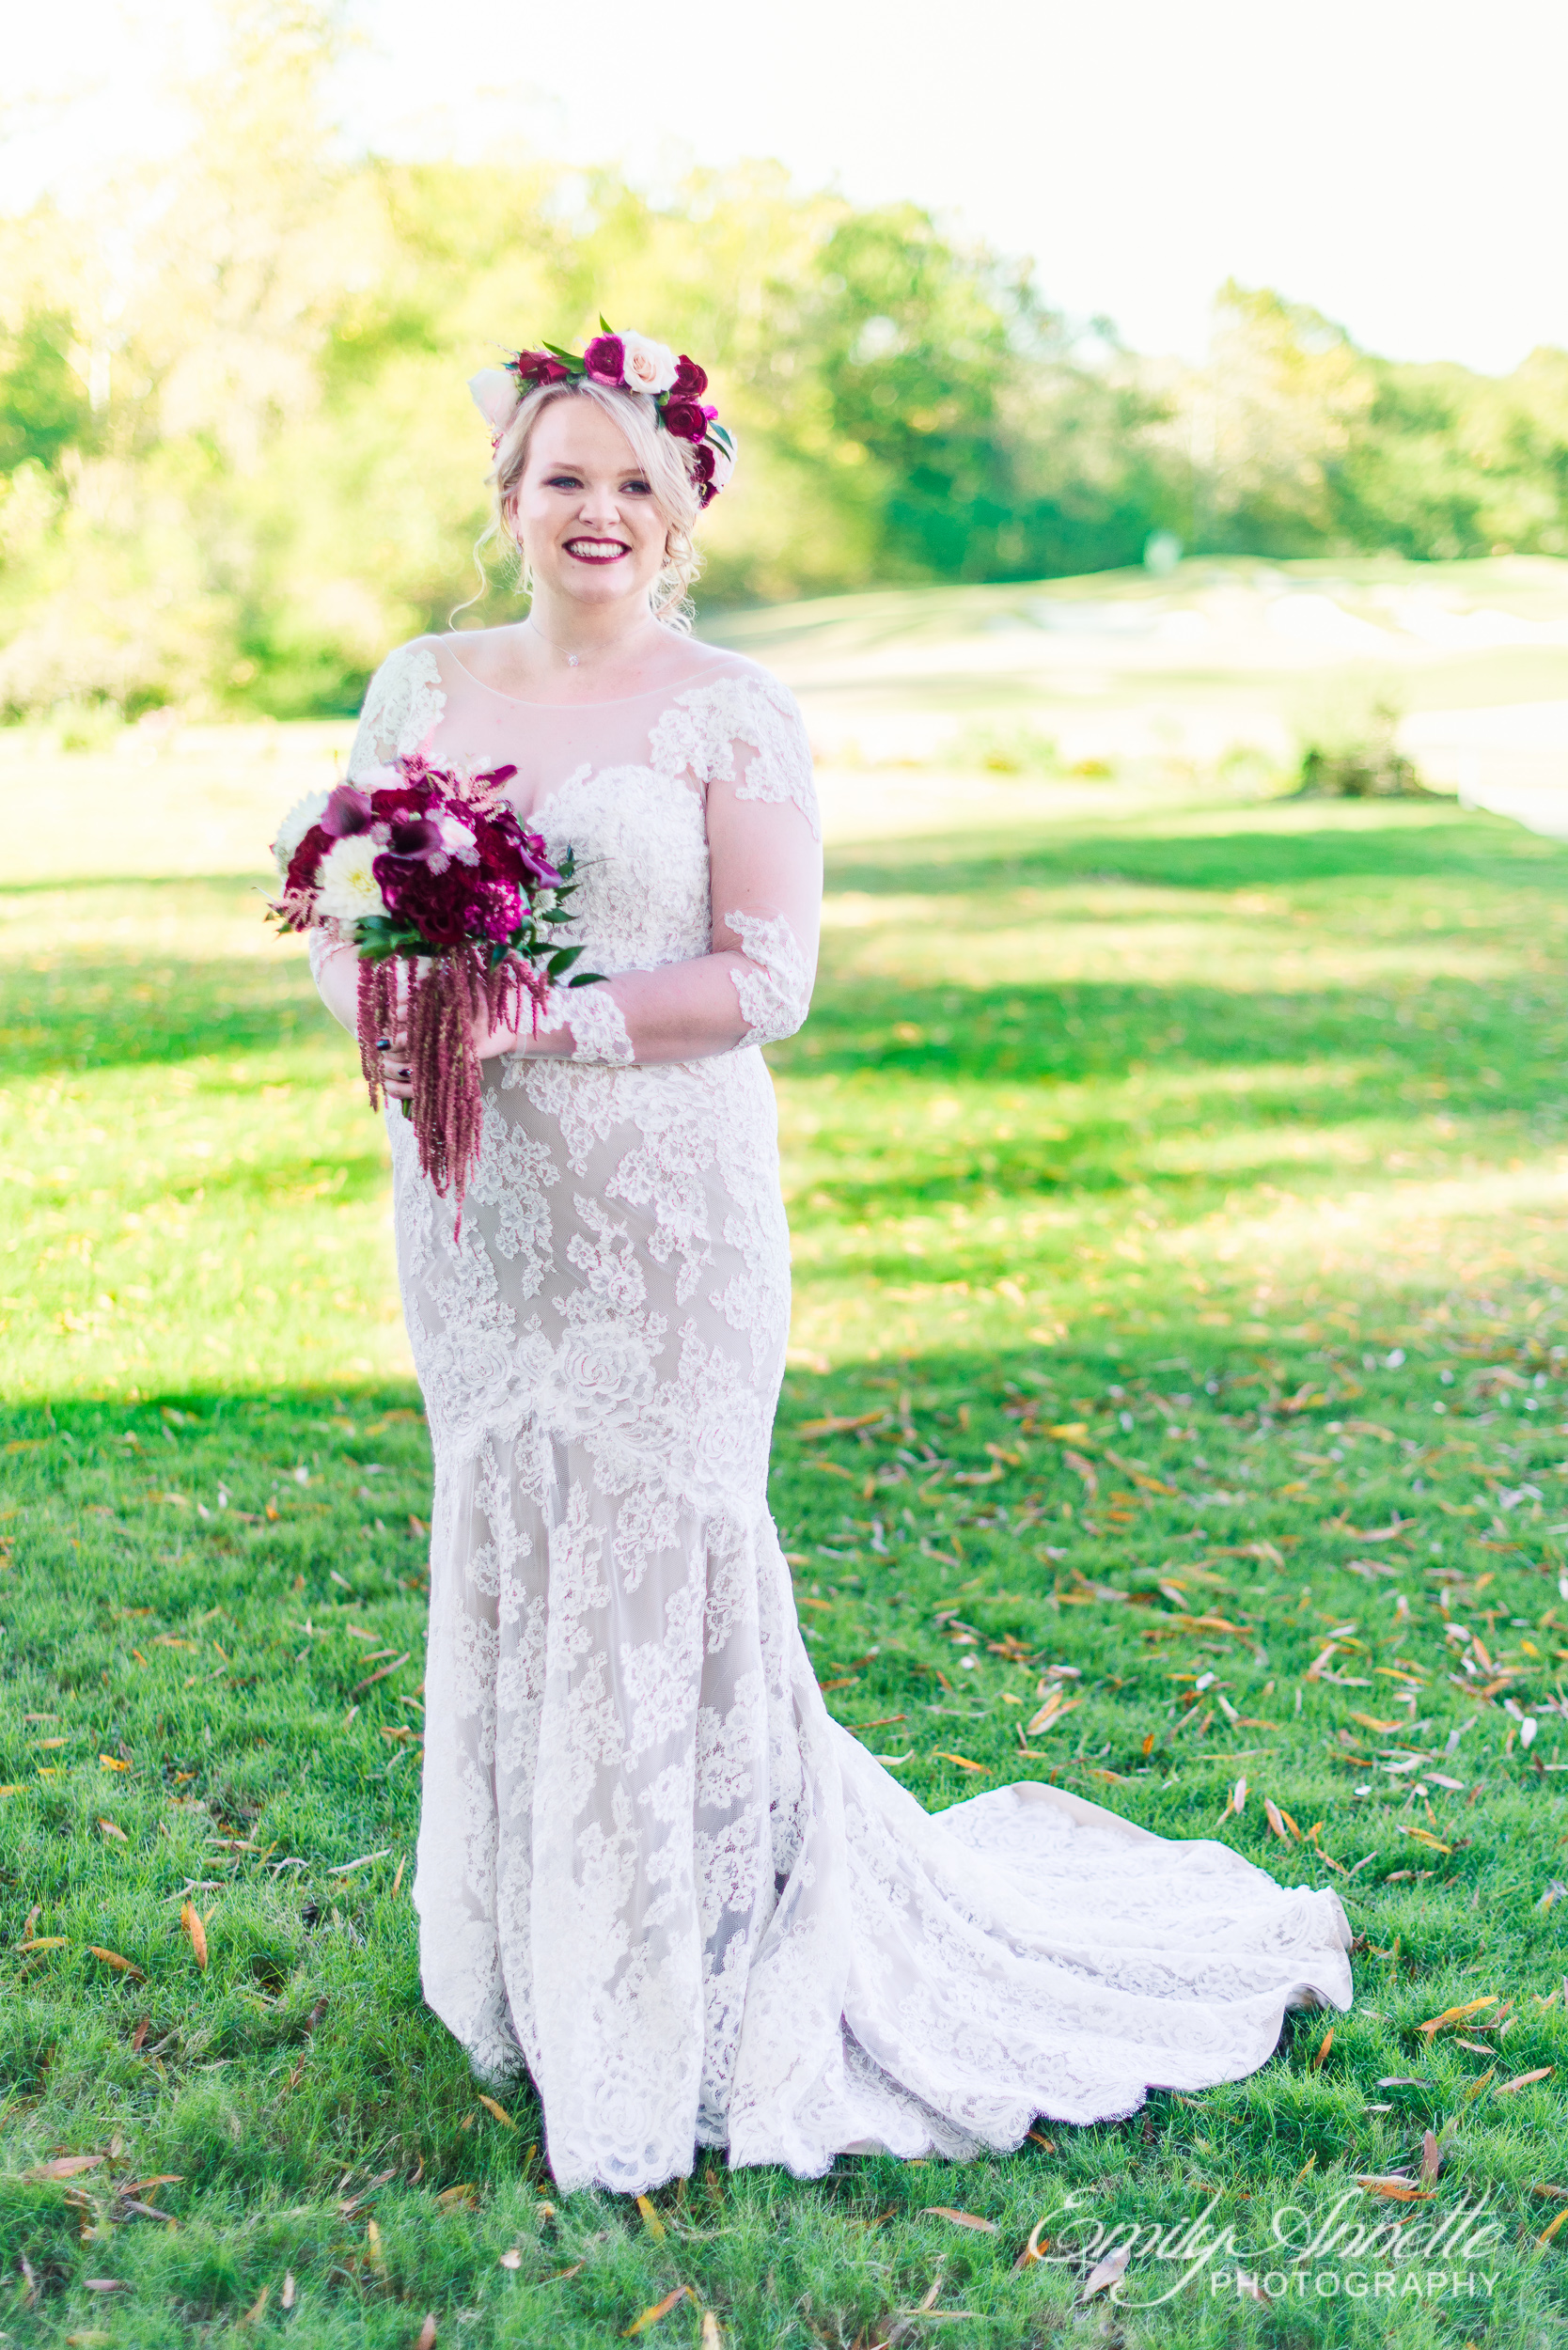 A bride wearing a lace wedding dress with sleeves and a flower crown holding her bridal bouquet on the golf course at Willow Oaks Country Club in Richmond, Virginia